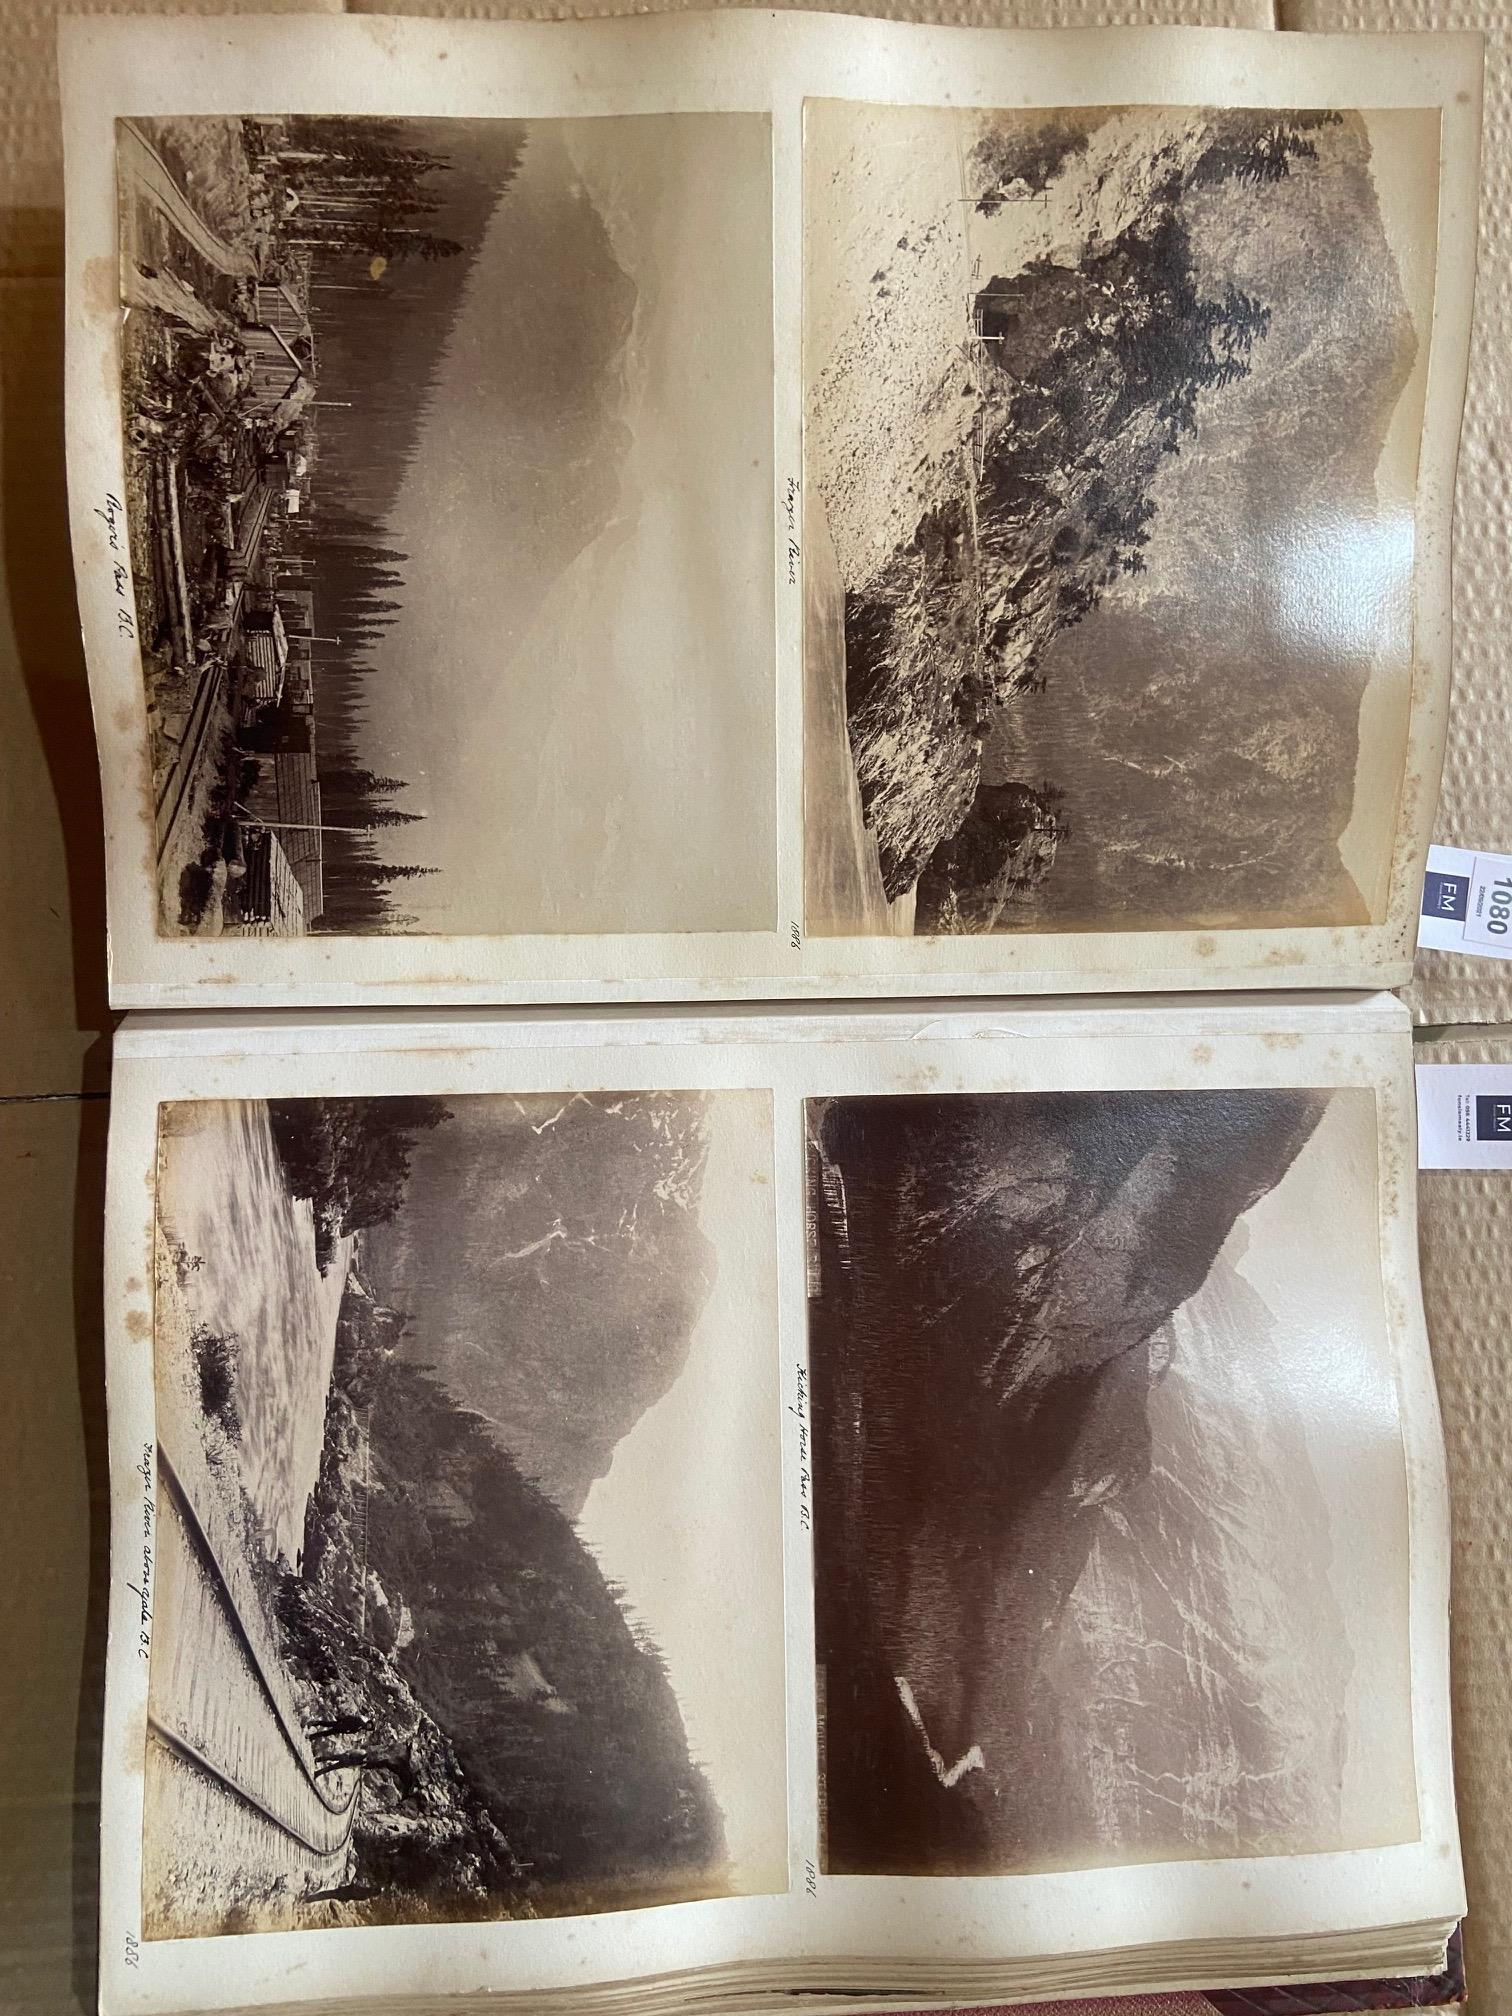 Photographs: Two large folio Albums of Photographs, each c. 1870 - 1890's. One Album contains - Image 12 of 31